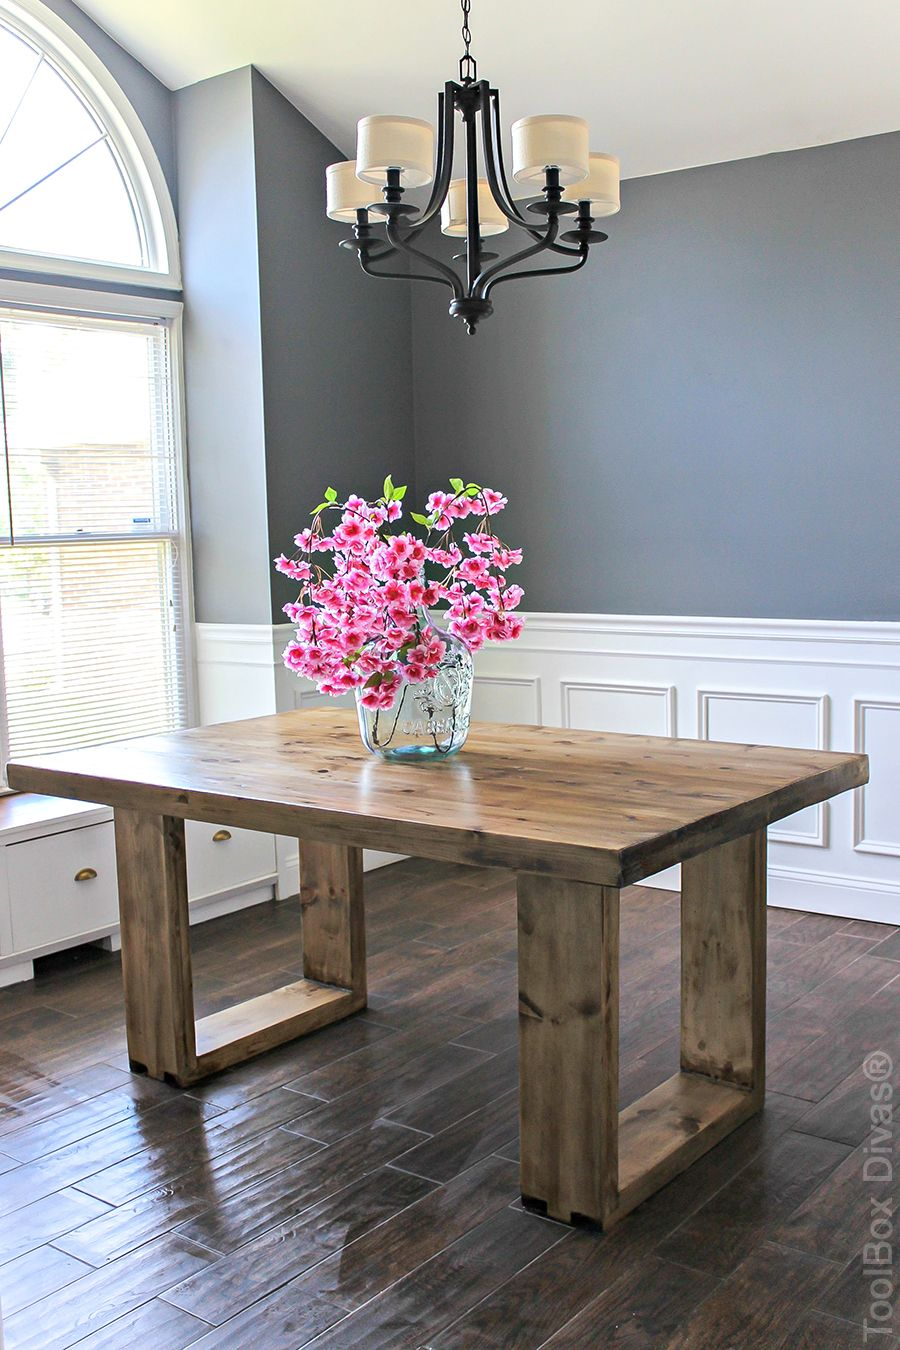 Kitchen Tables Modern Diy husky modern dining table stylish dinners and modern how to build a diy husky modern dining table for 100 modern and stylish this dining table is sure to impress your dinner guests plans by jen woodhouse workwithnaturefo